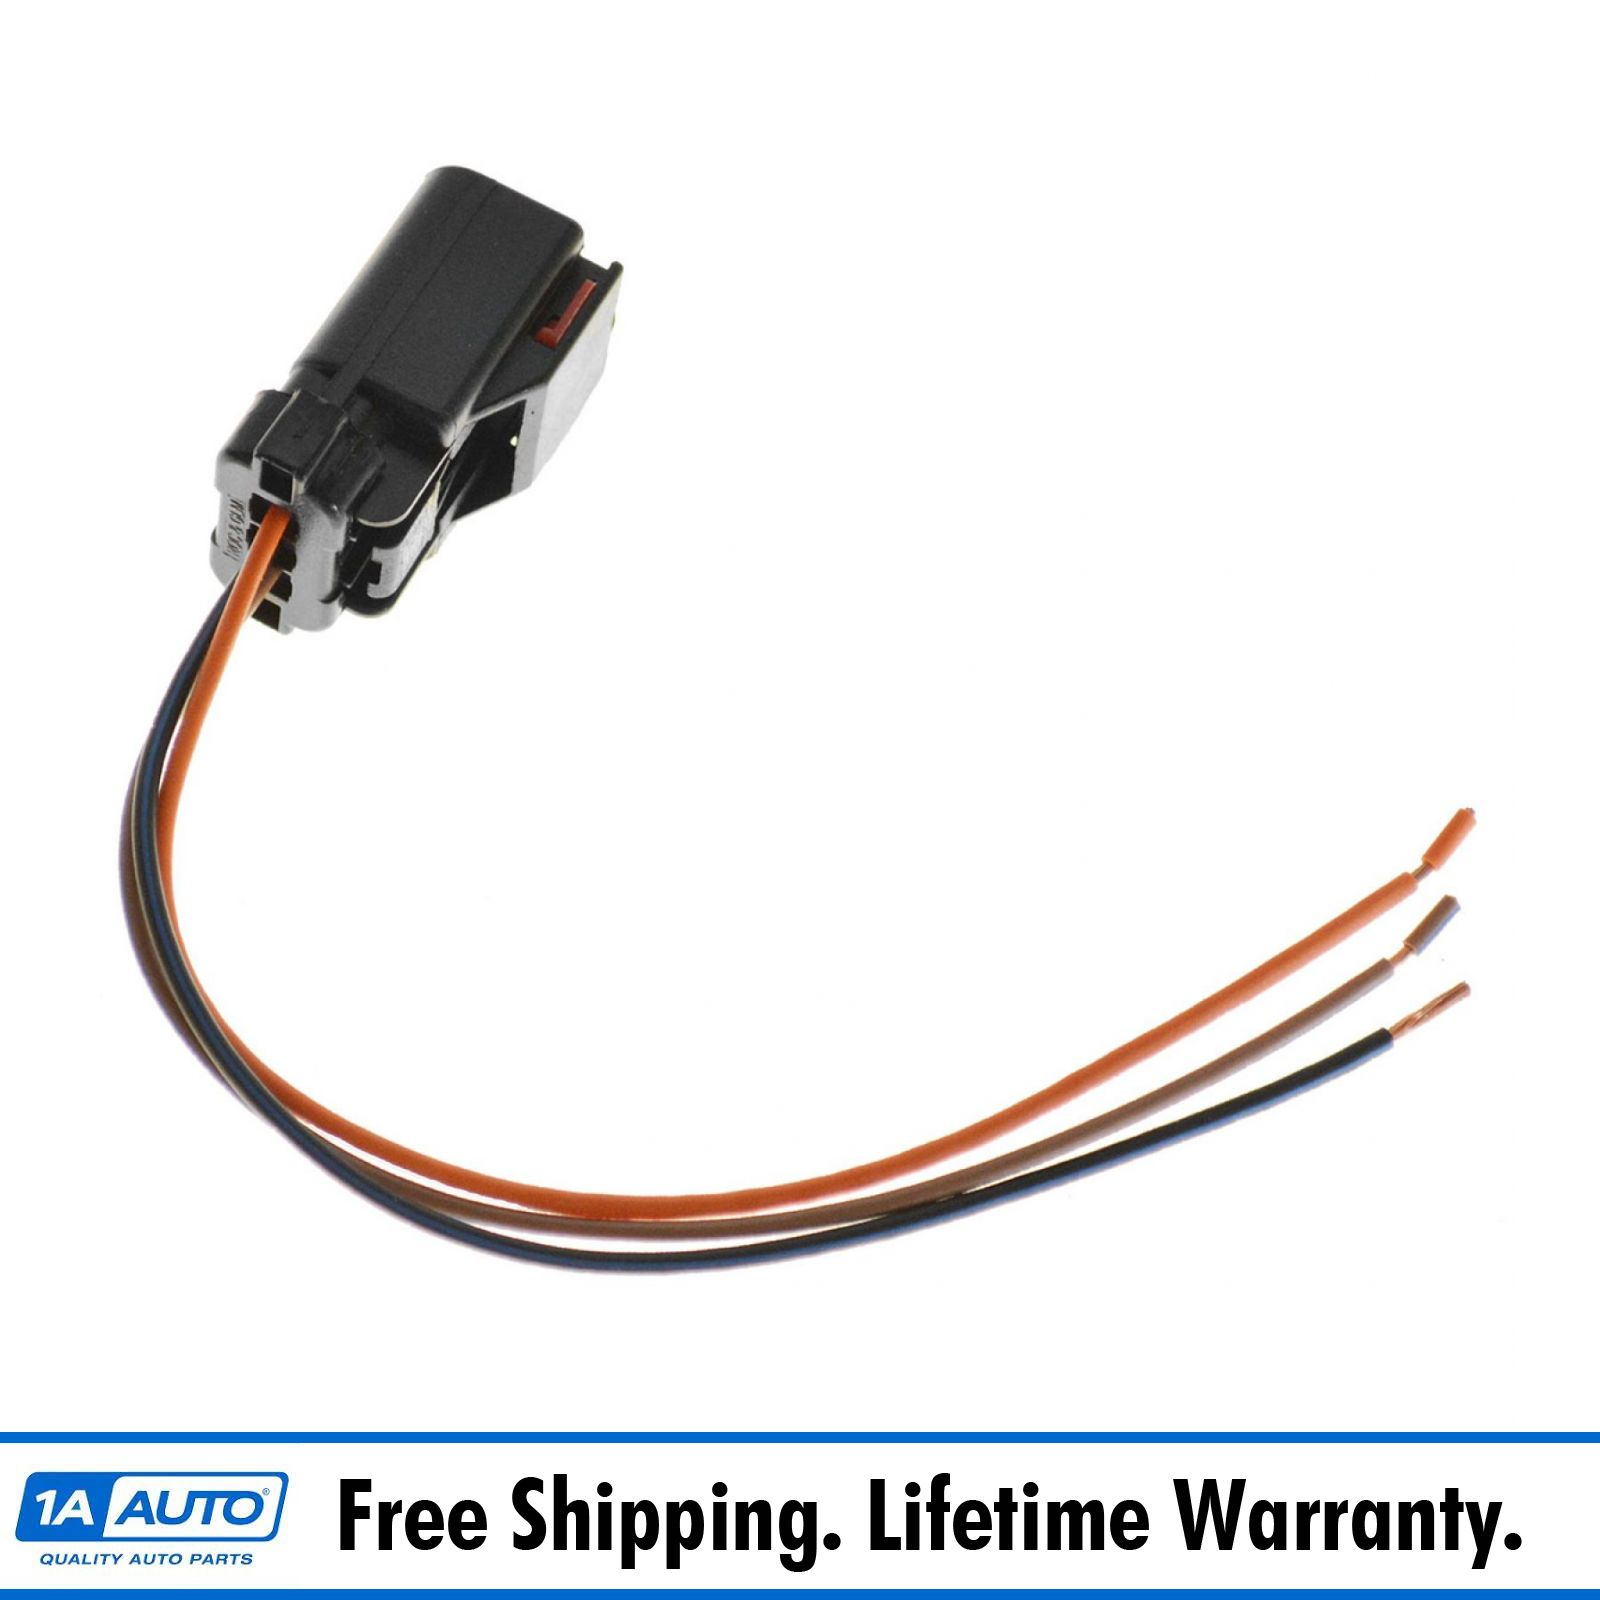 wiring connector pigtail harness 3 terminal pin for chrysler dodge wiring connector pigtail harness 3 terminal pin for chrysler dodge mitsubishi